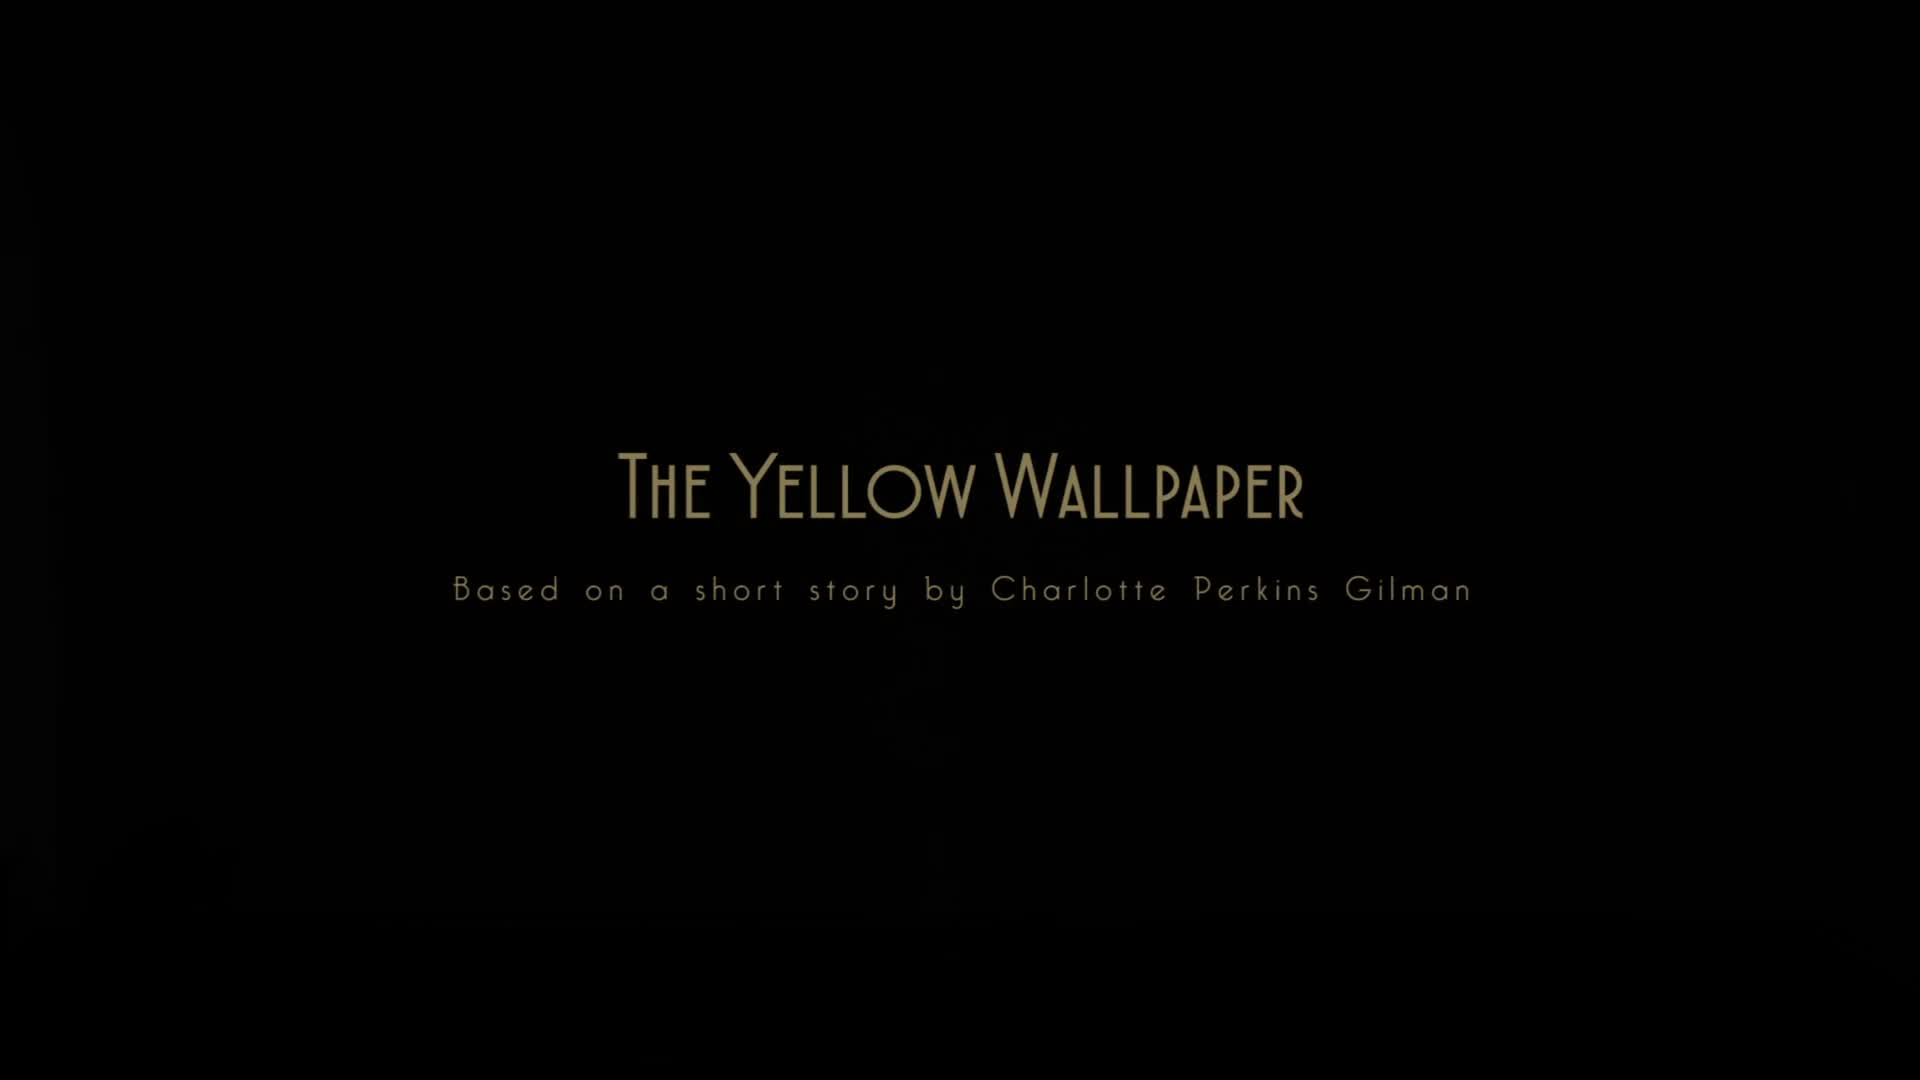 the story of an hour and the yellow wallpaper essay Get an answer for 'please compare and contrast the yellow wallpaper and story of an hour' and find homework help for other the yellow wallpaper questions at enotes.